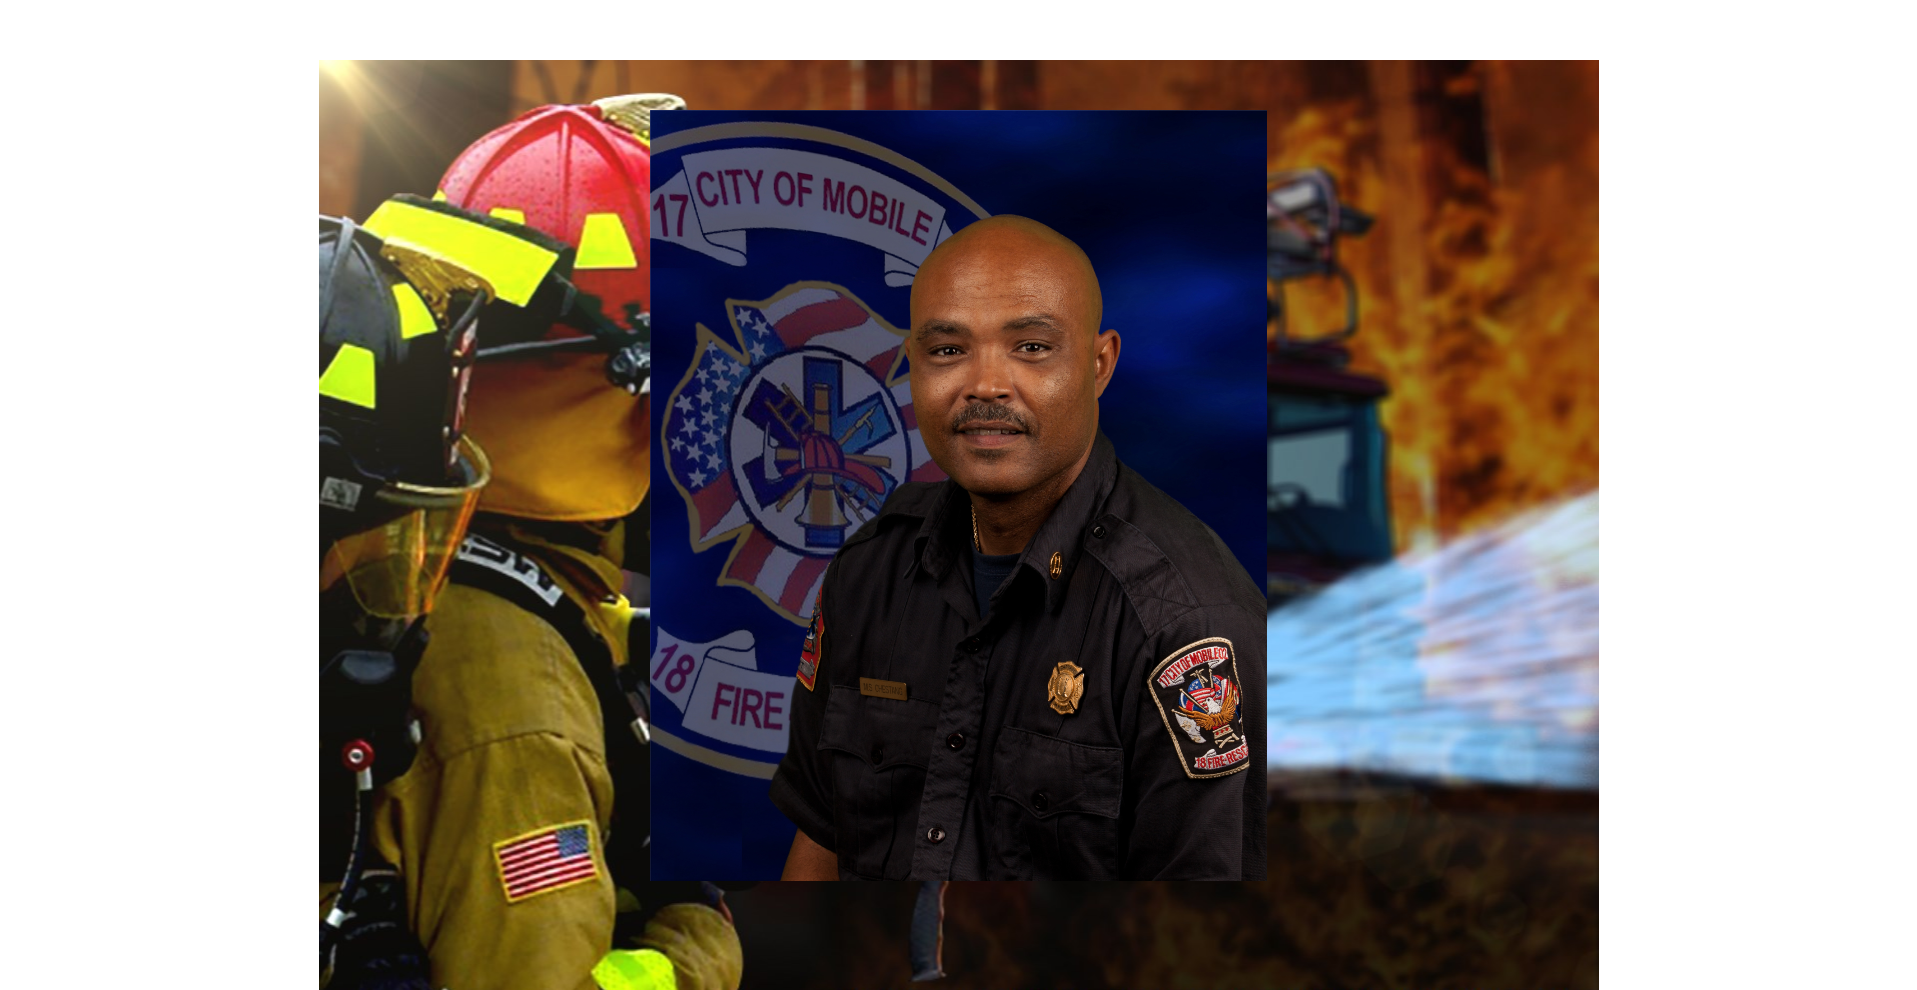 (image: MFRD)  Michael Chestang named February Firefighter of the Month in Mobile